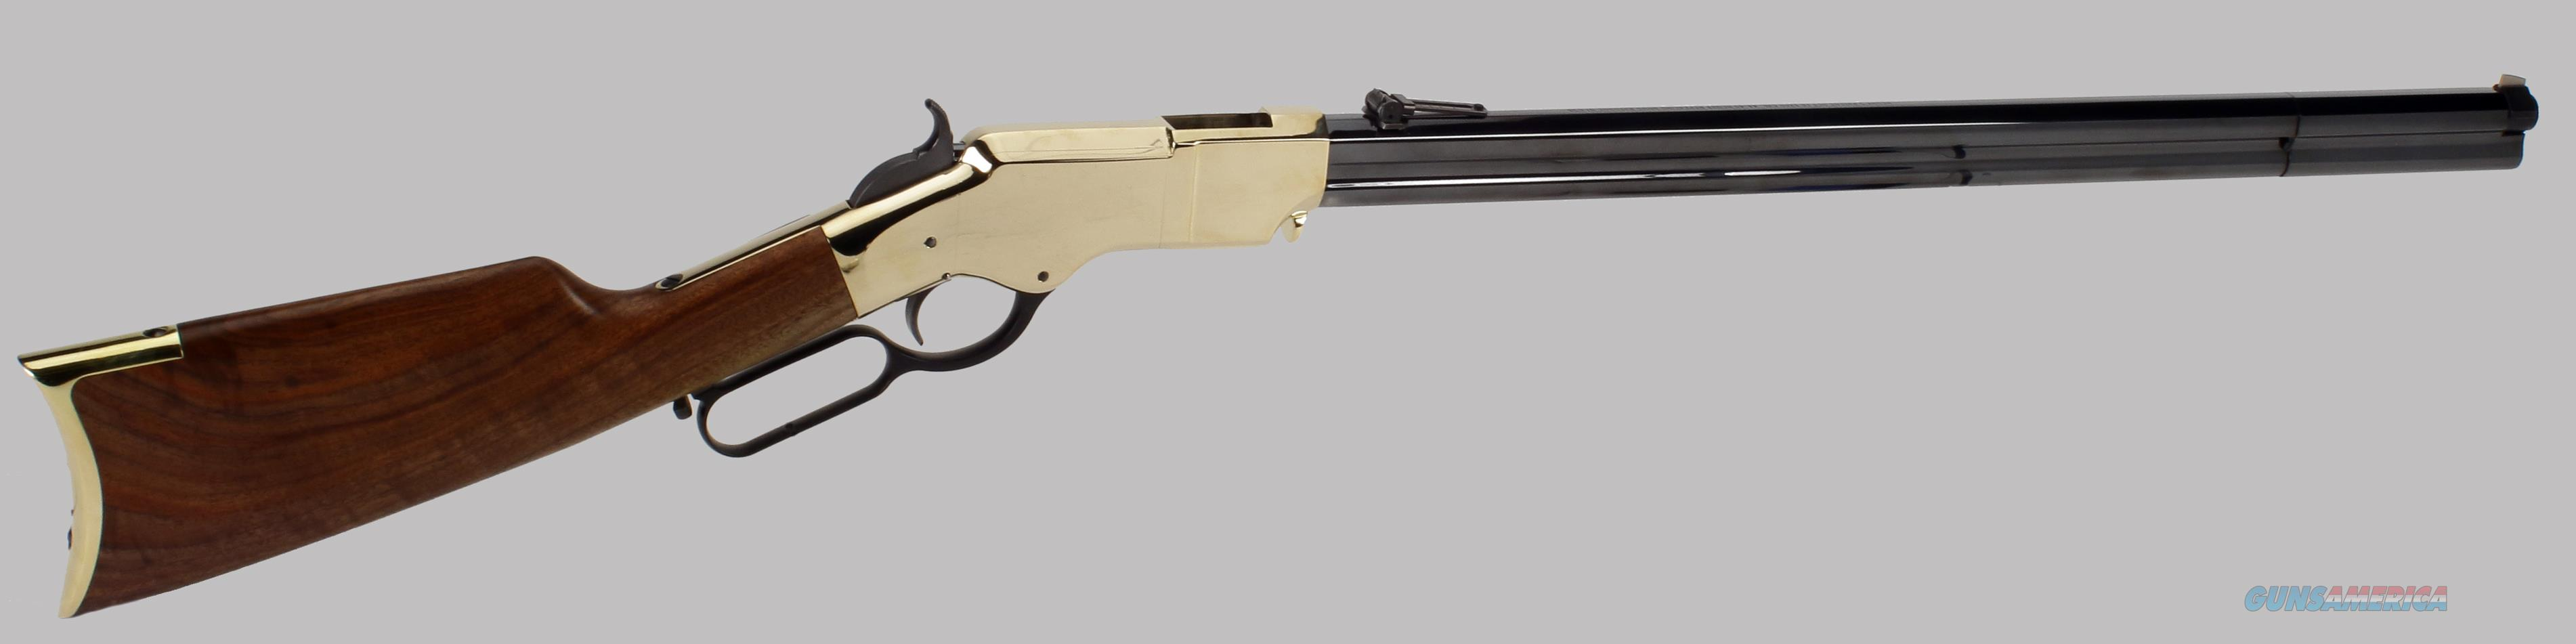 Henry BTH Lever Action Rifle  Guns > Rifles > Henry Rifle Company